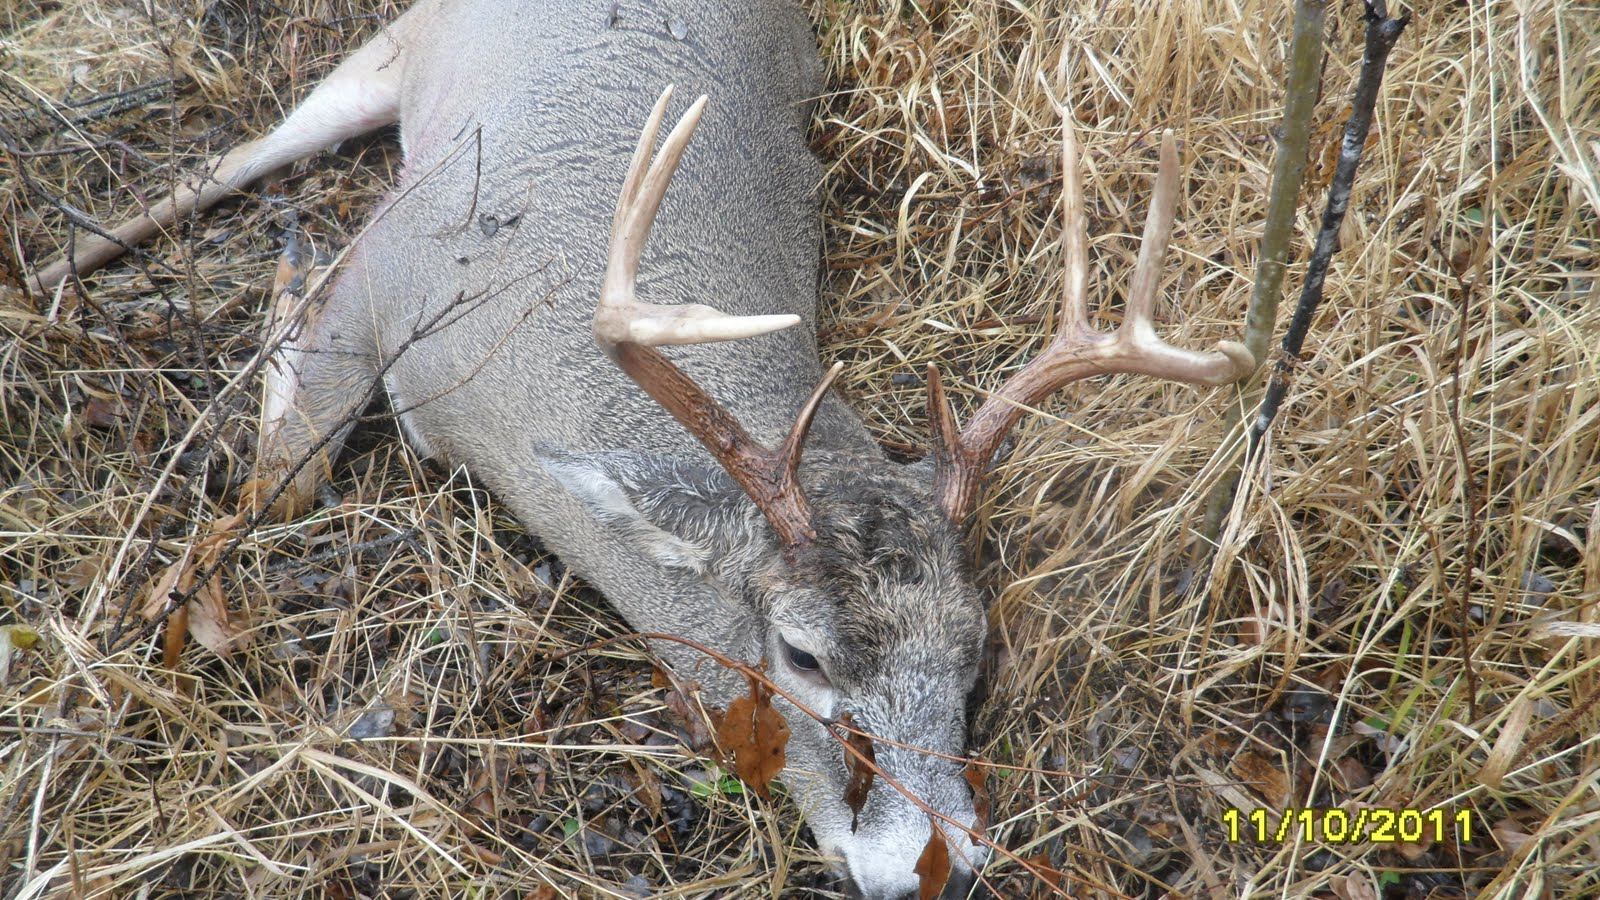 10 Point Buck Dead http://wolfwaters.blogspot.com/2011/11/hunt-continues-in-alberta.html